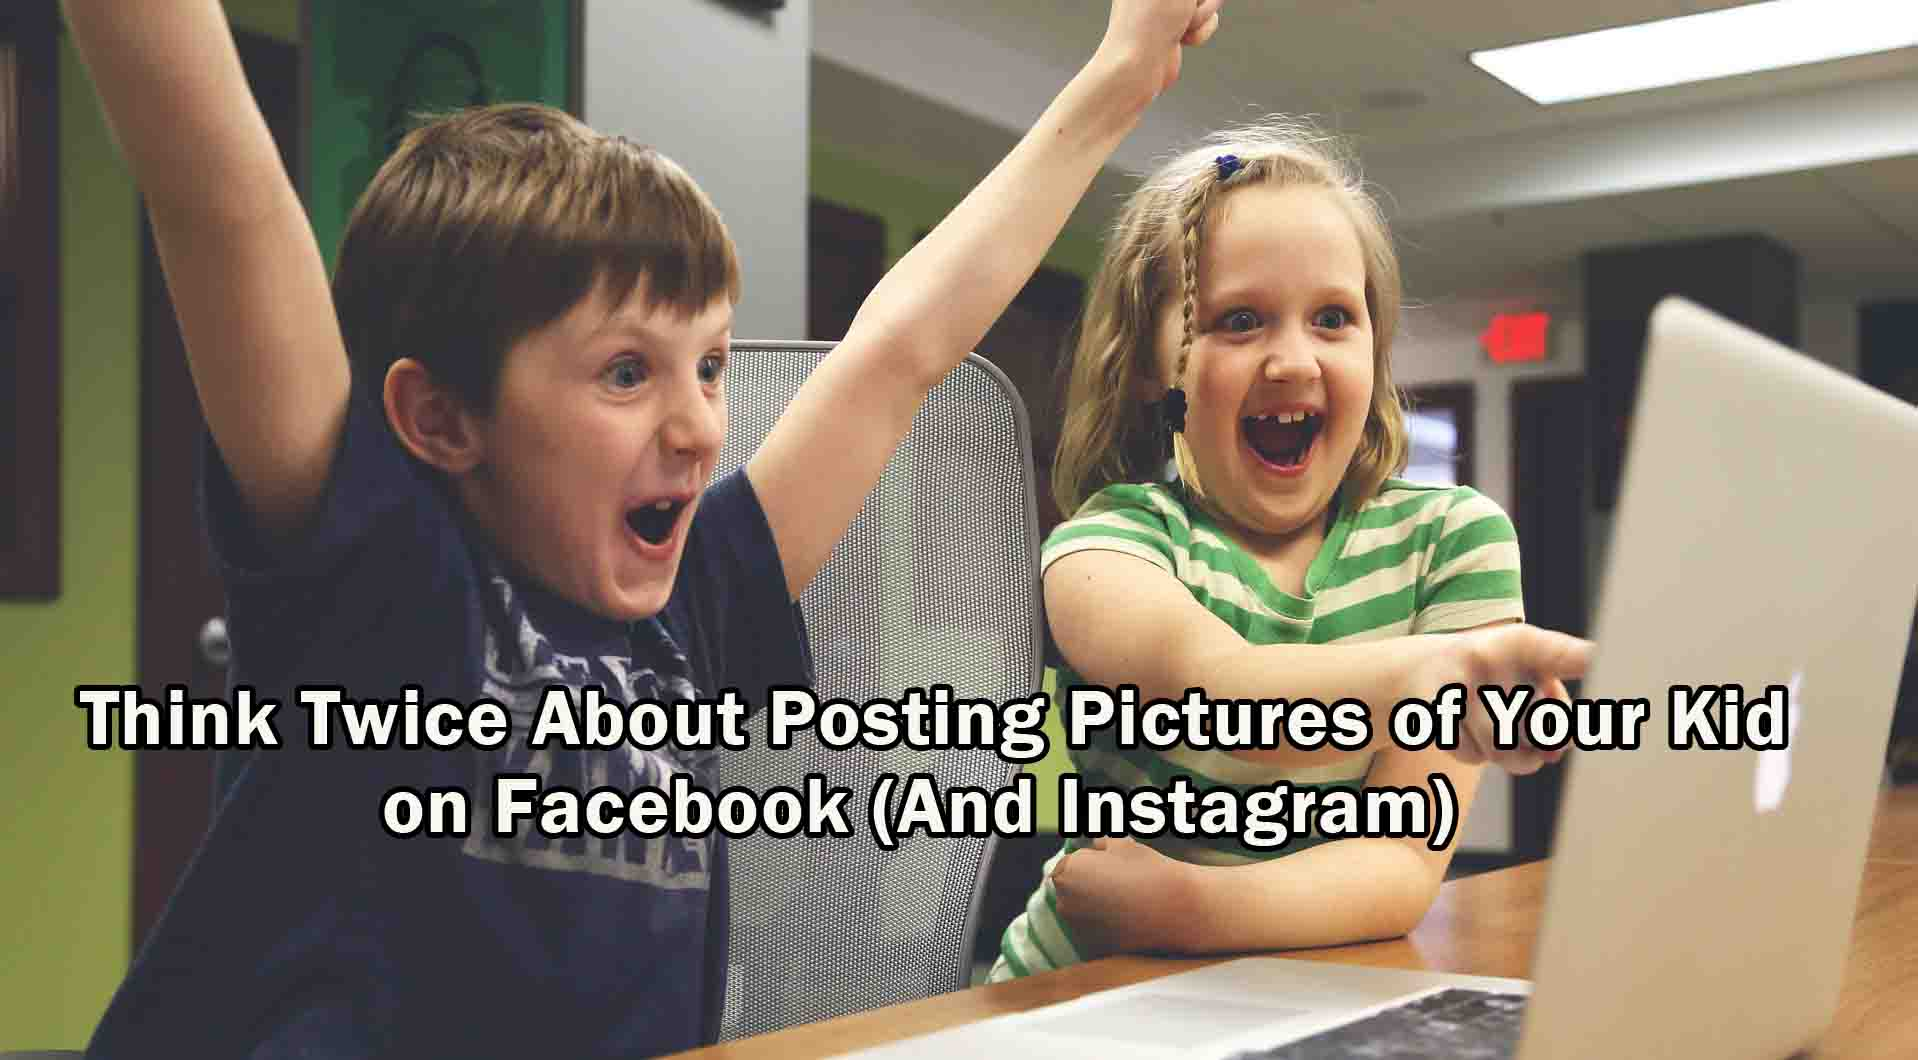 Think Twice About Posting Pictures of Your Kid on Facebook